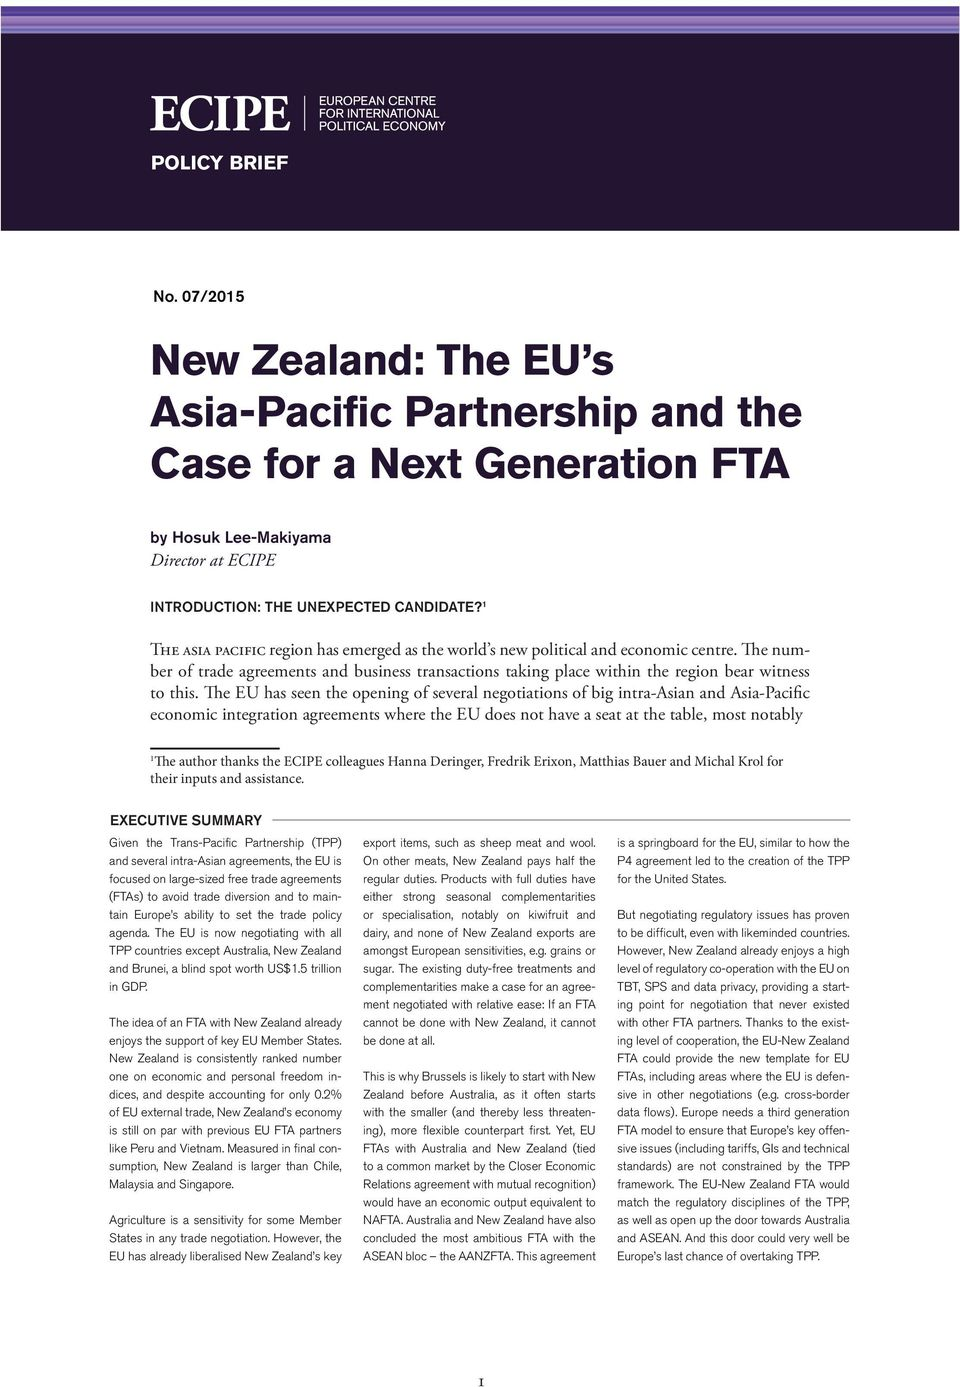 The EU has seen the opening of several negotiations of big intra-asian and Asia-Pacific economic integration agreements where the EU does not have a seat at the table, most notably 1 The author